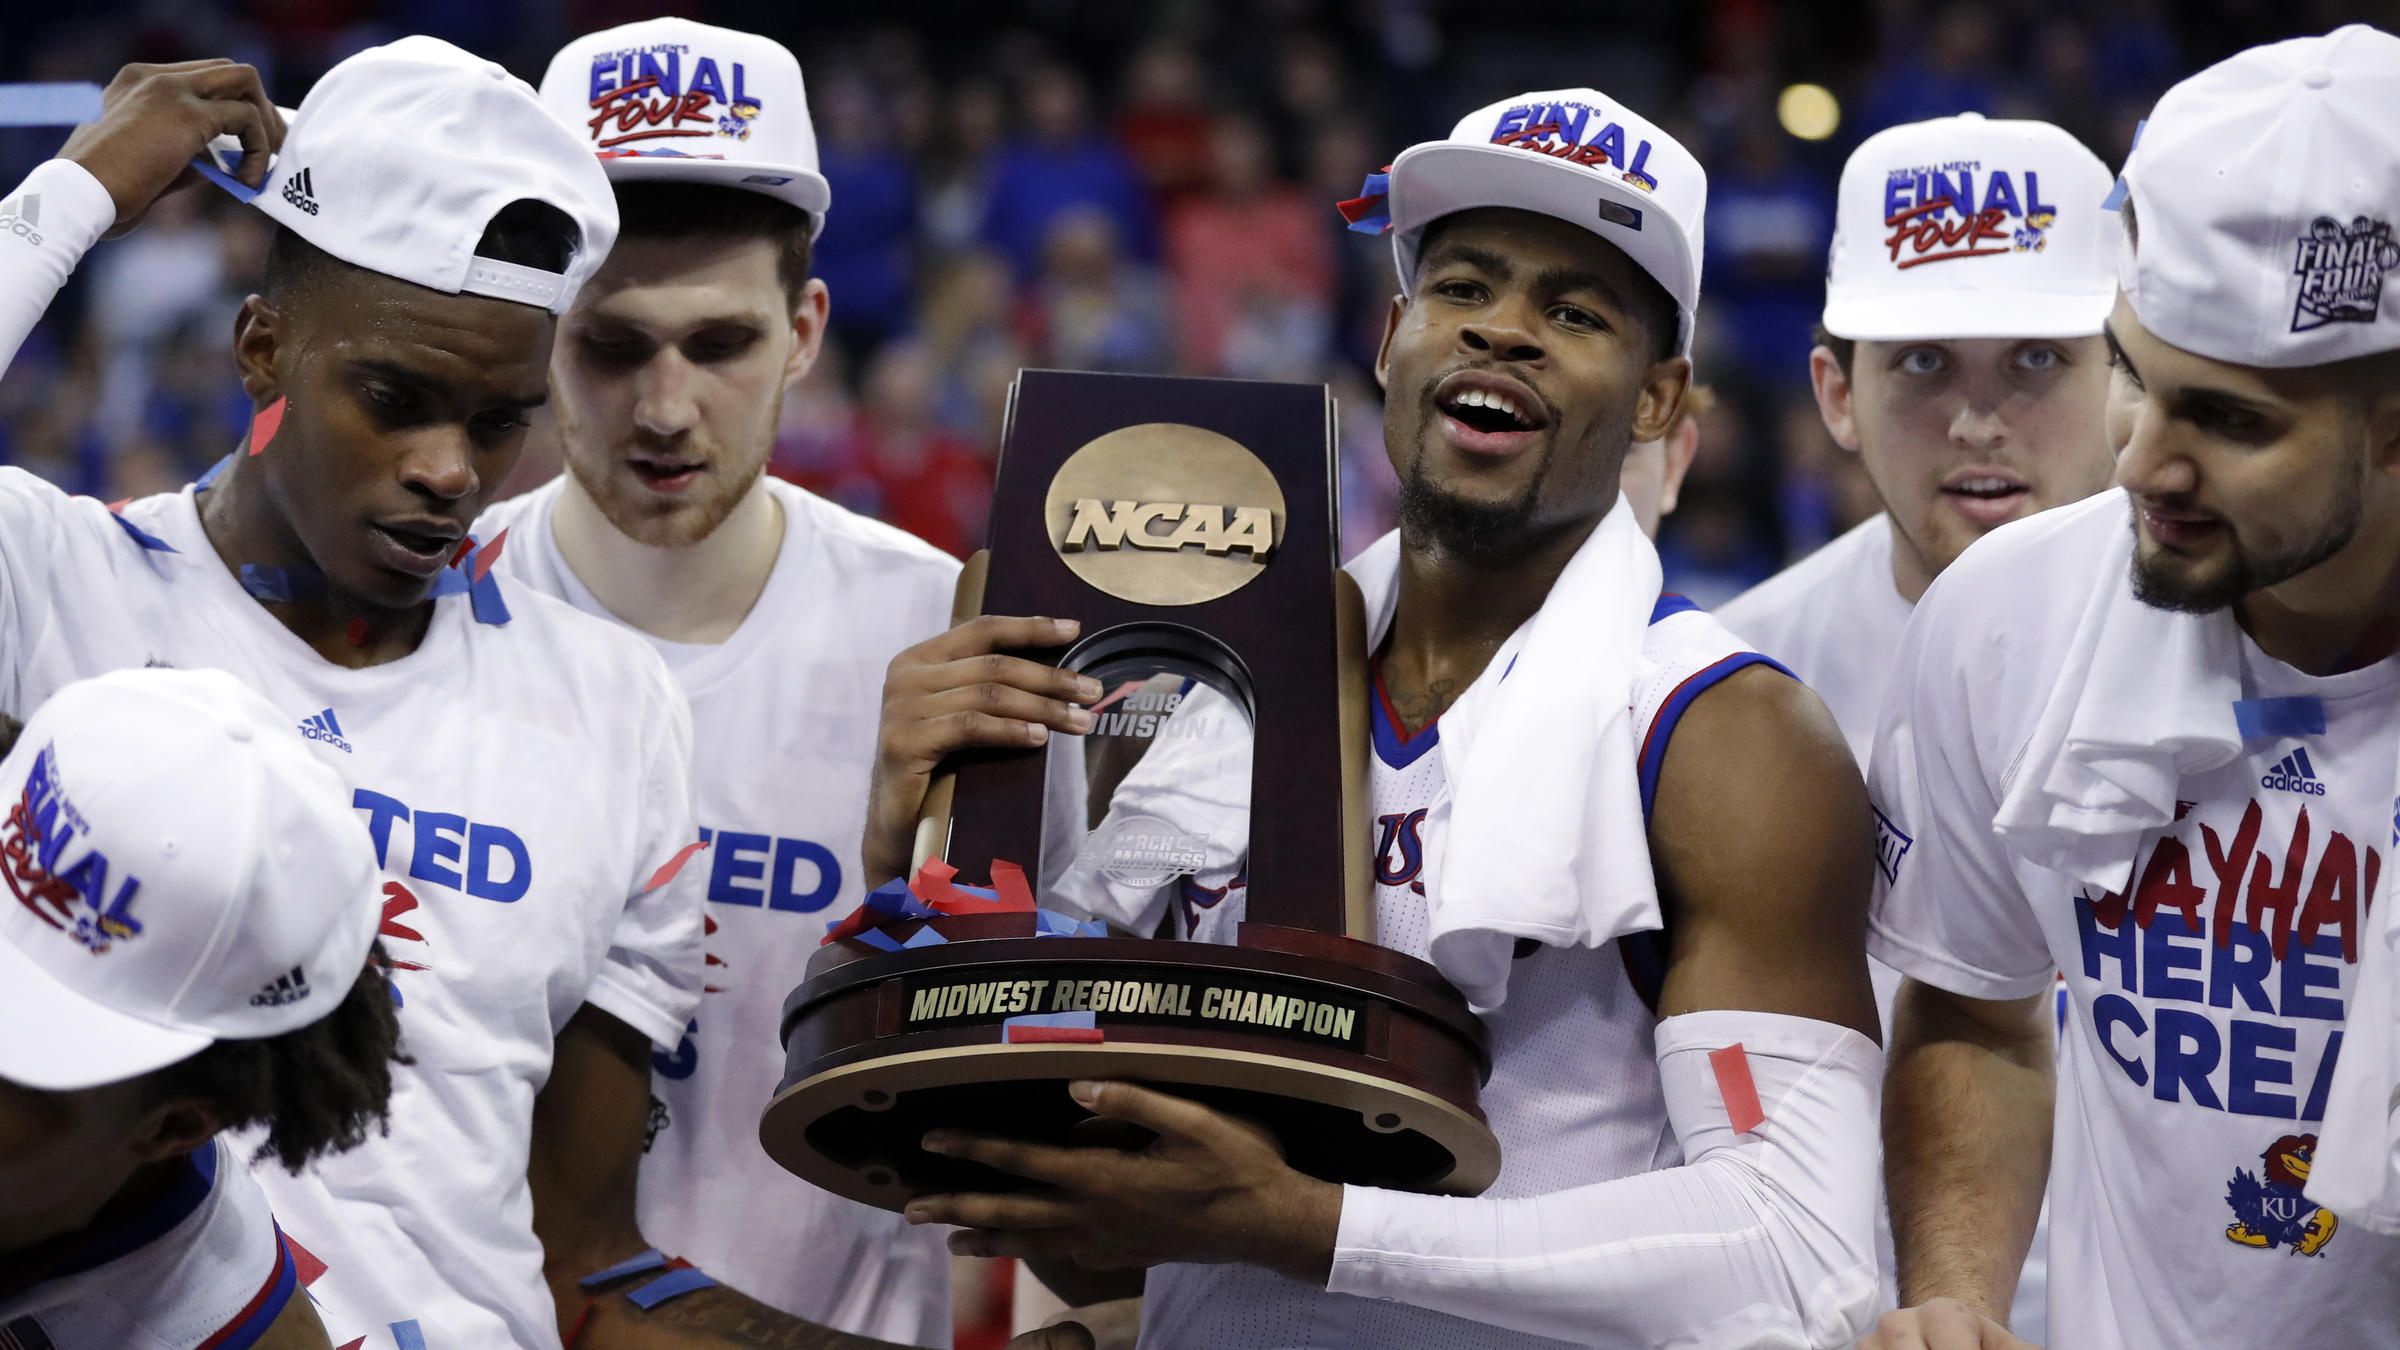 City leaders share safety plans for Final Four weekend